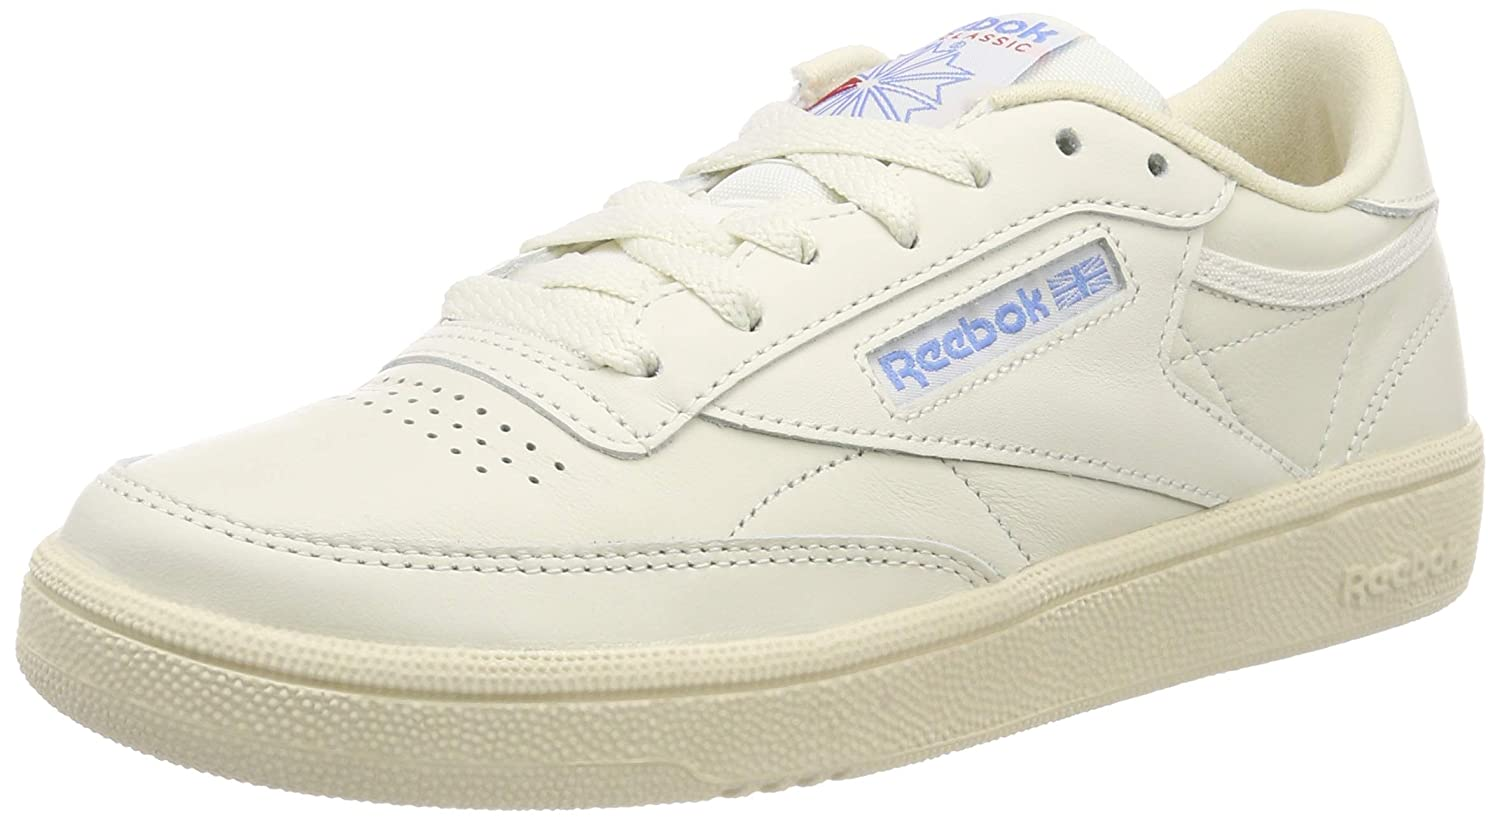 fee687413cf Amazon.com  Reebok Club C 85 Vintage Womens Sneakers White  Clothing